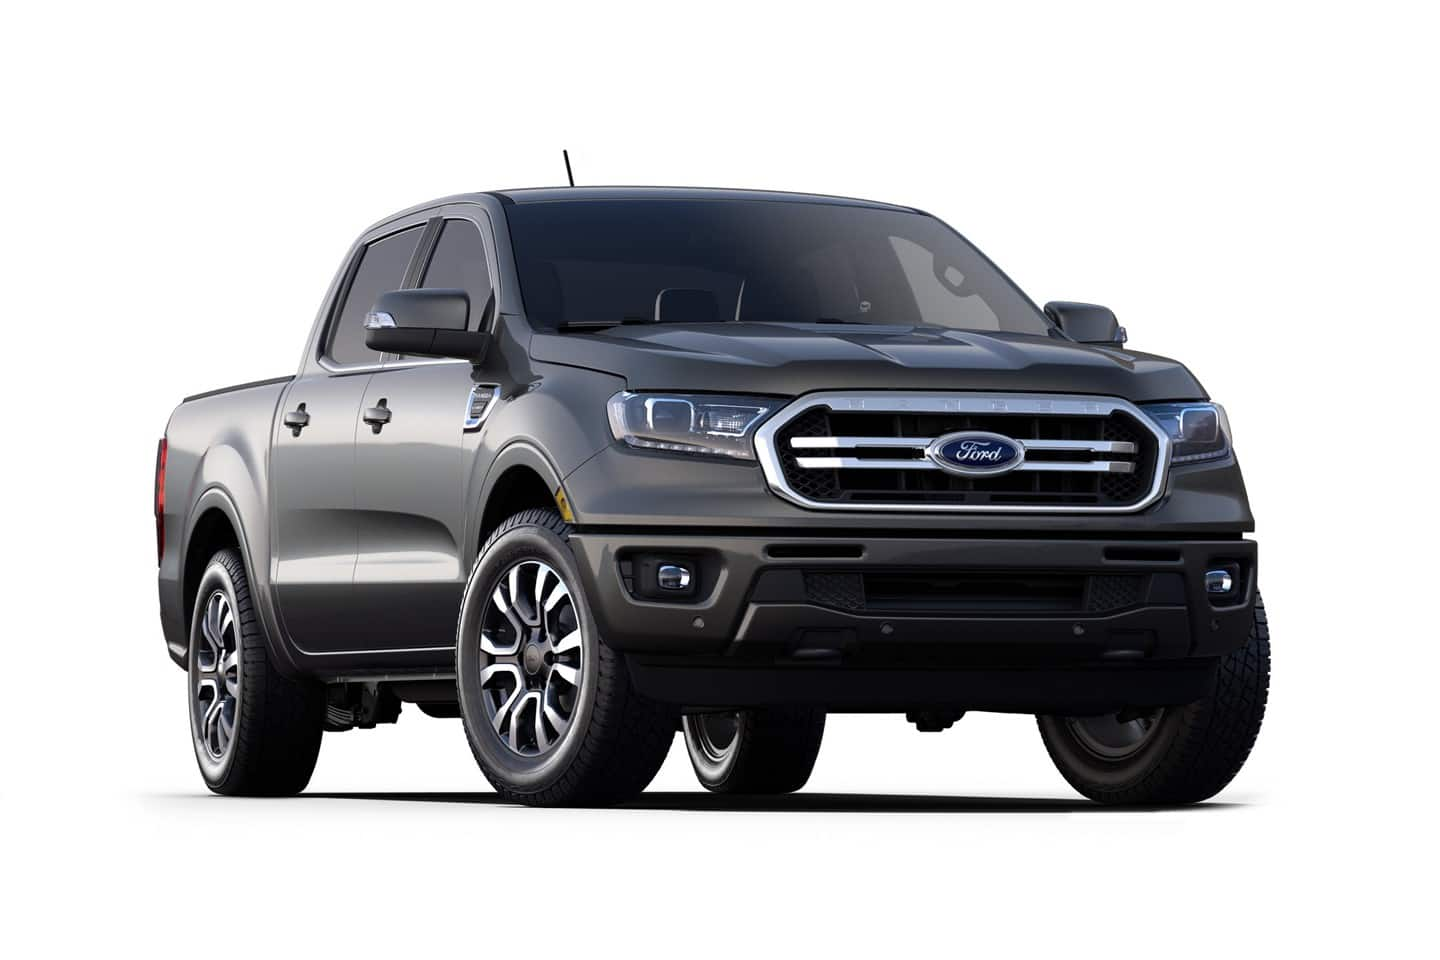 20 New 2019 Ford Ranger Aluminum Model by 2019 Ford Ranger Aluminum